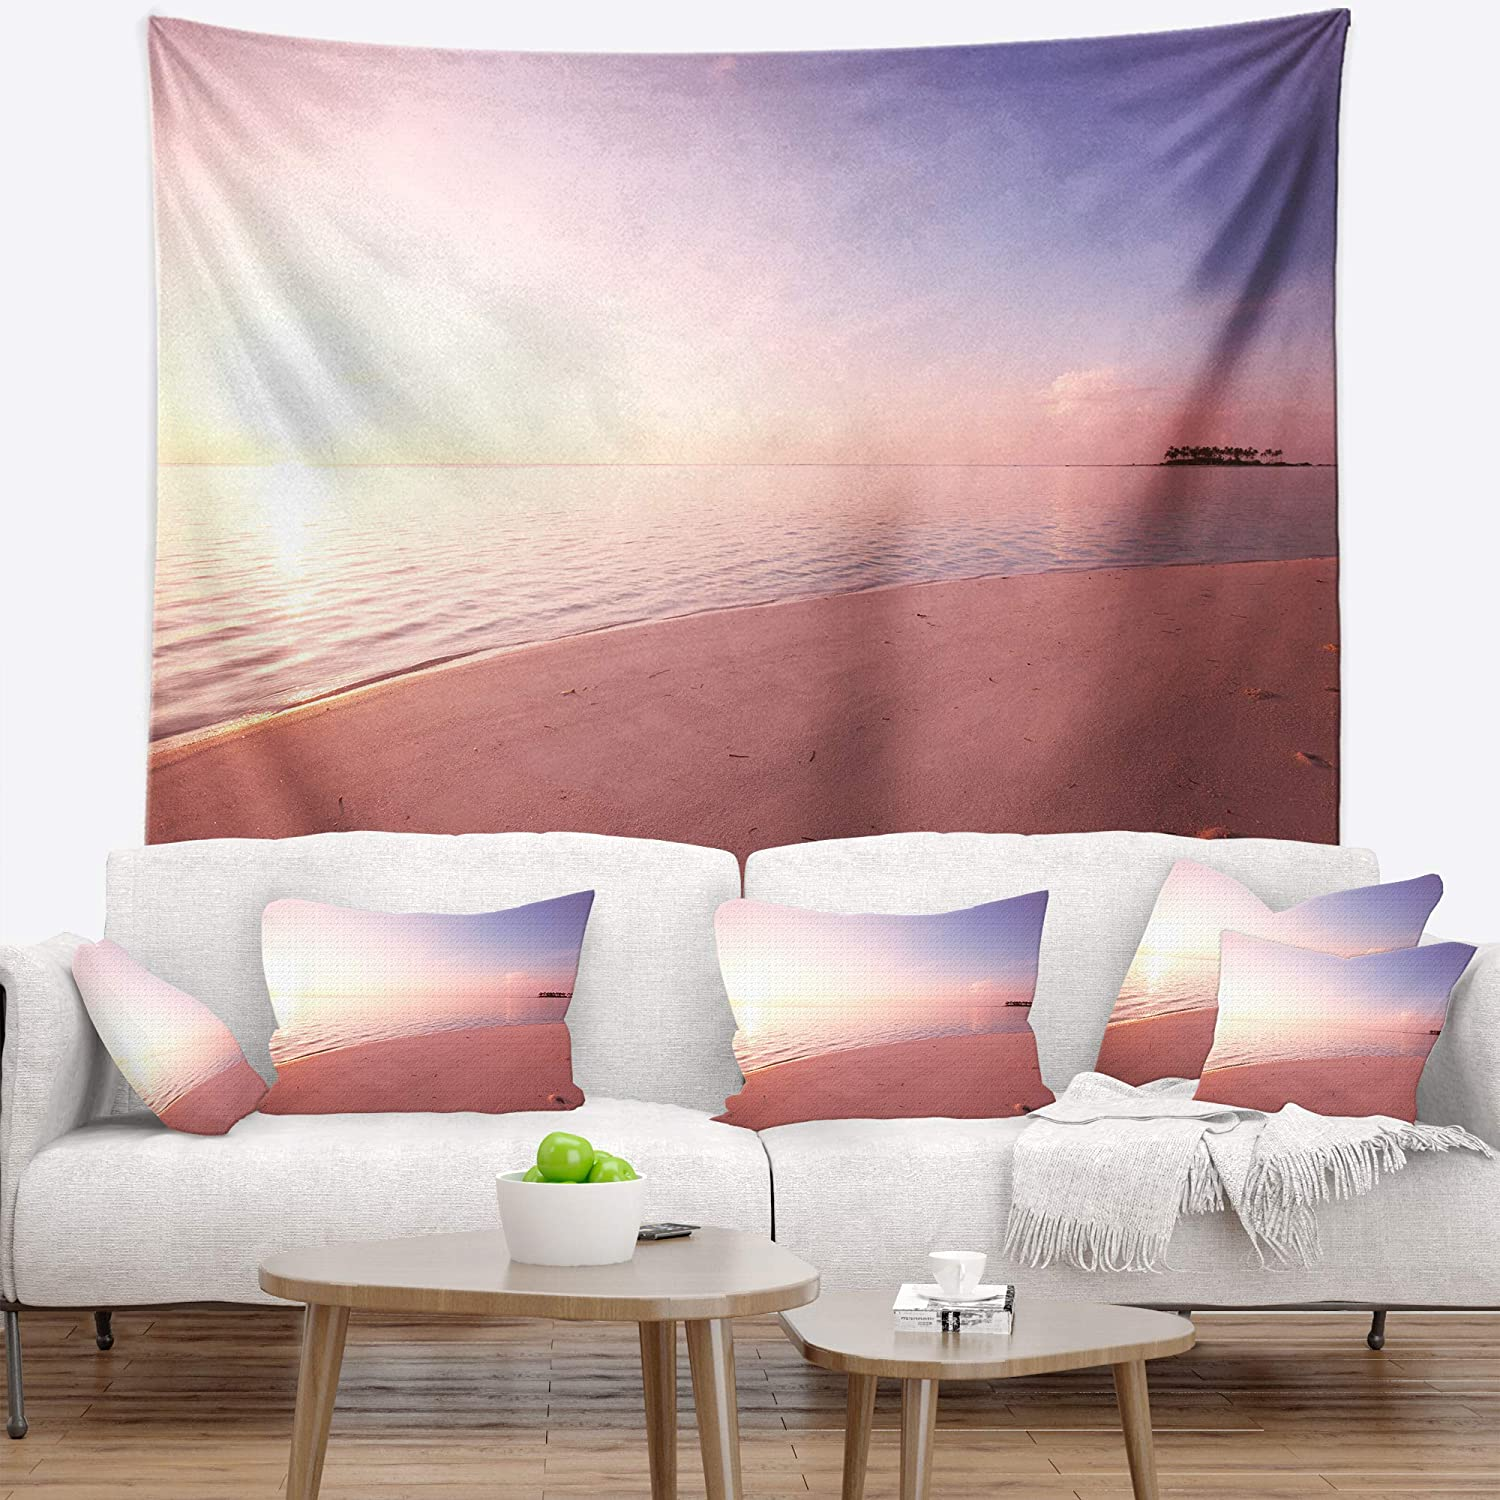 80 in Designart TAP12829-80-68  Serene Maldives Seashore at Sunset Landscape Blanket D/écor Art for Home and Office Wall Tapestry x Large x 68 in Created On Lightweight Polyester Fabric